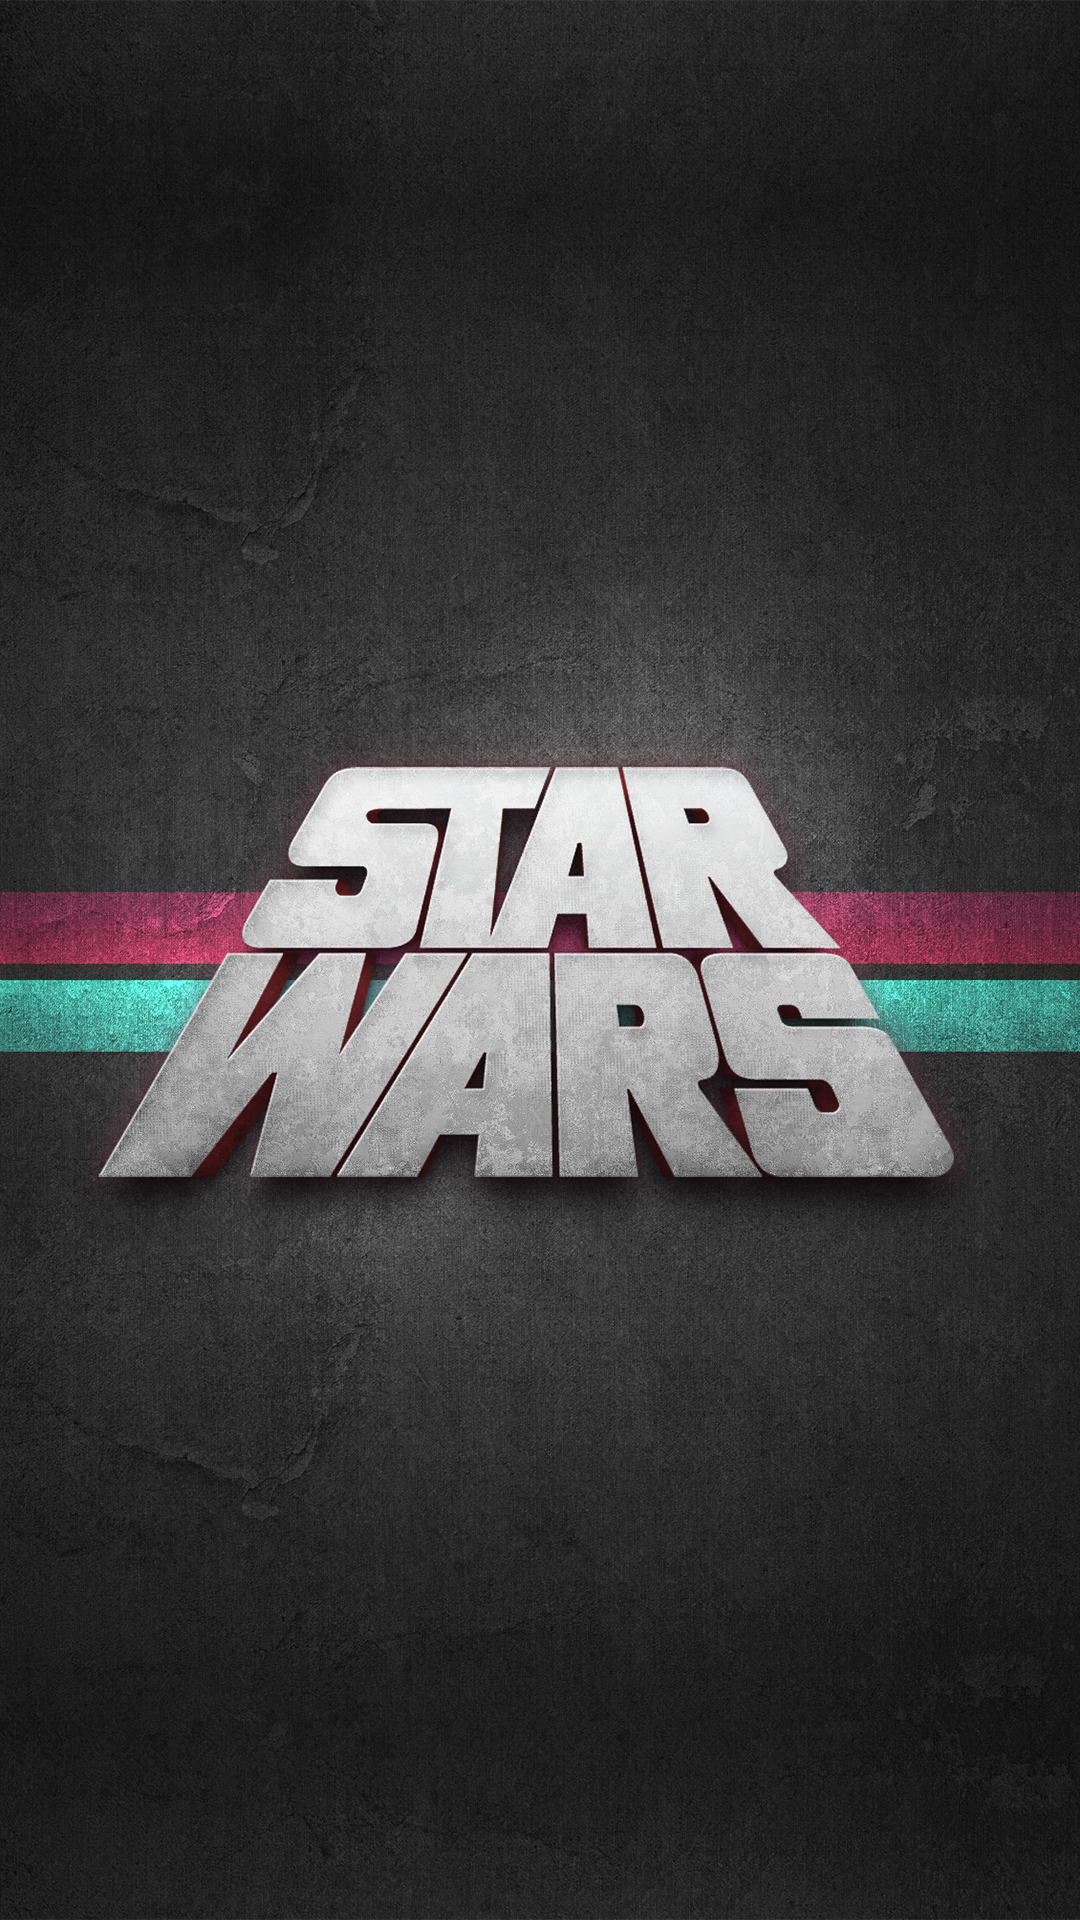 HTC One M8 Wallpapers Oldies Star Wars Android Wallpapers 1080x1920